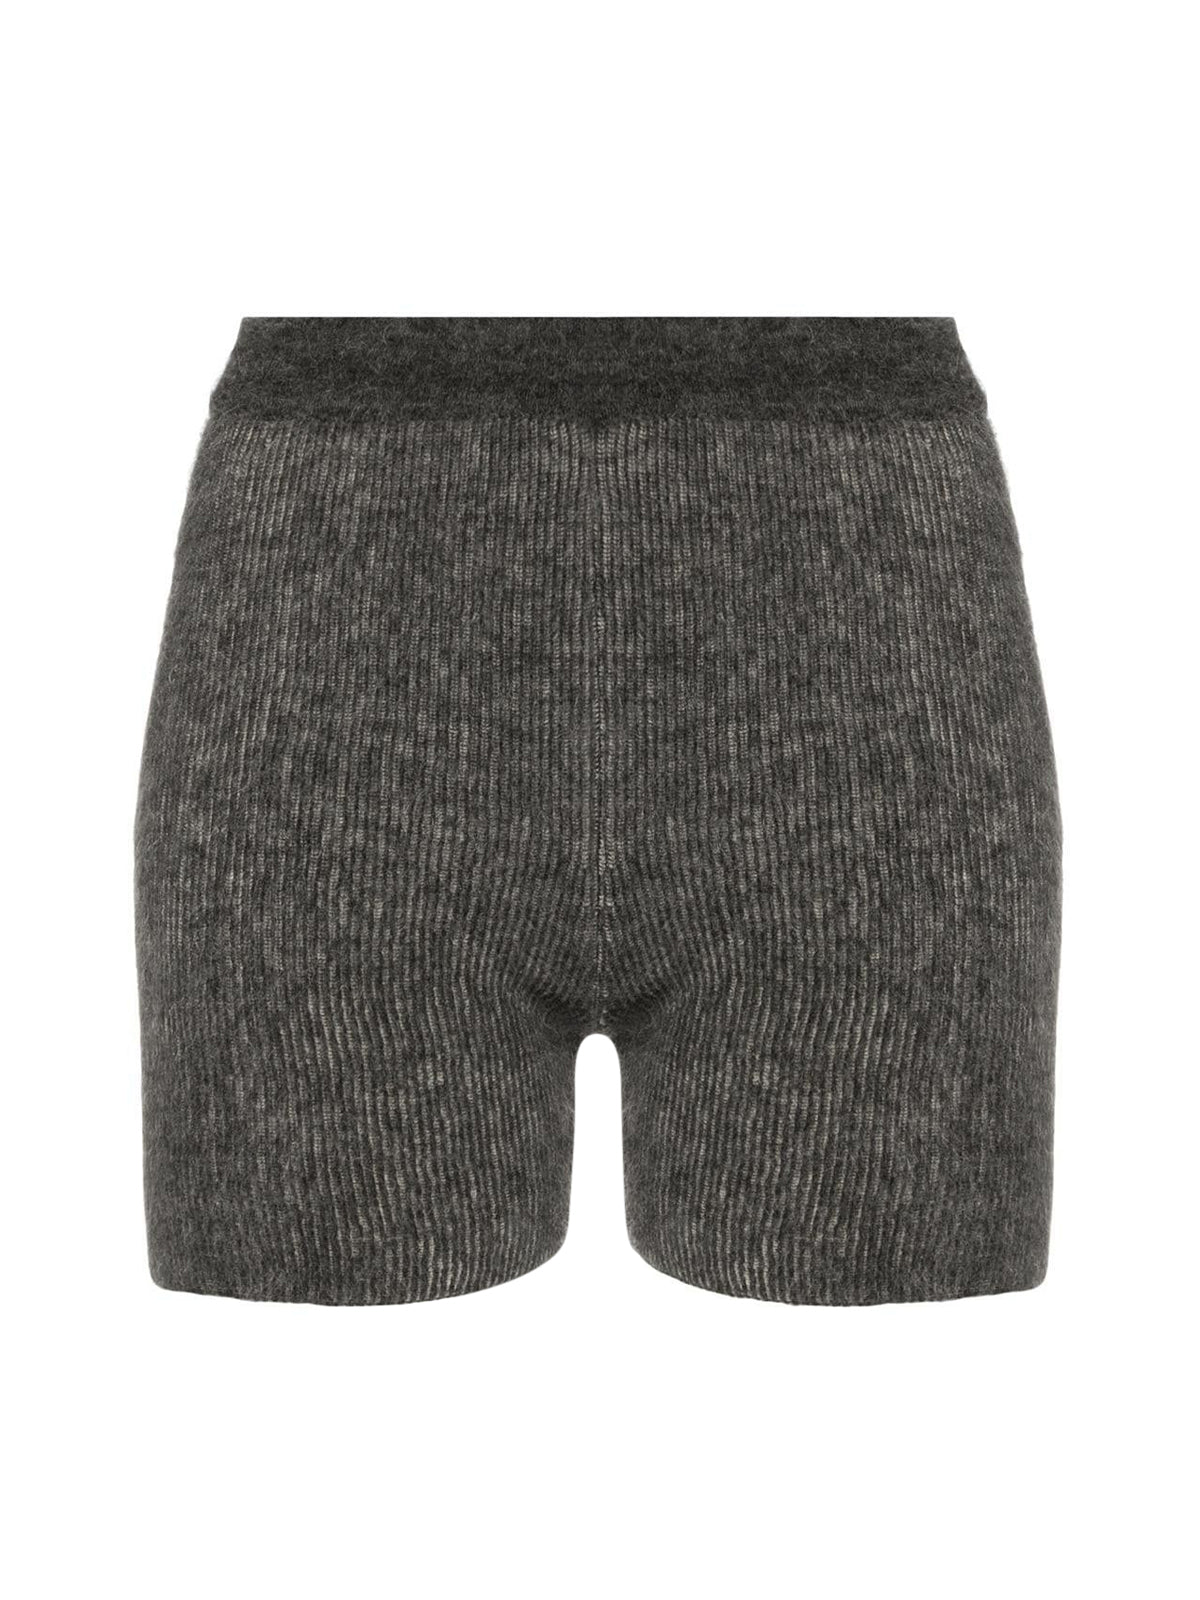 Arancia knitted shorts